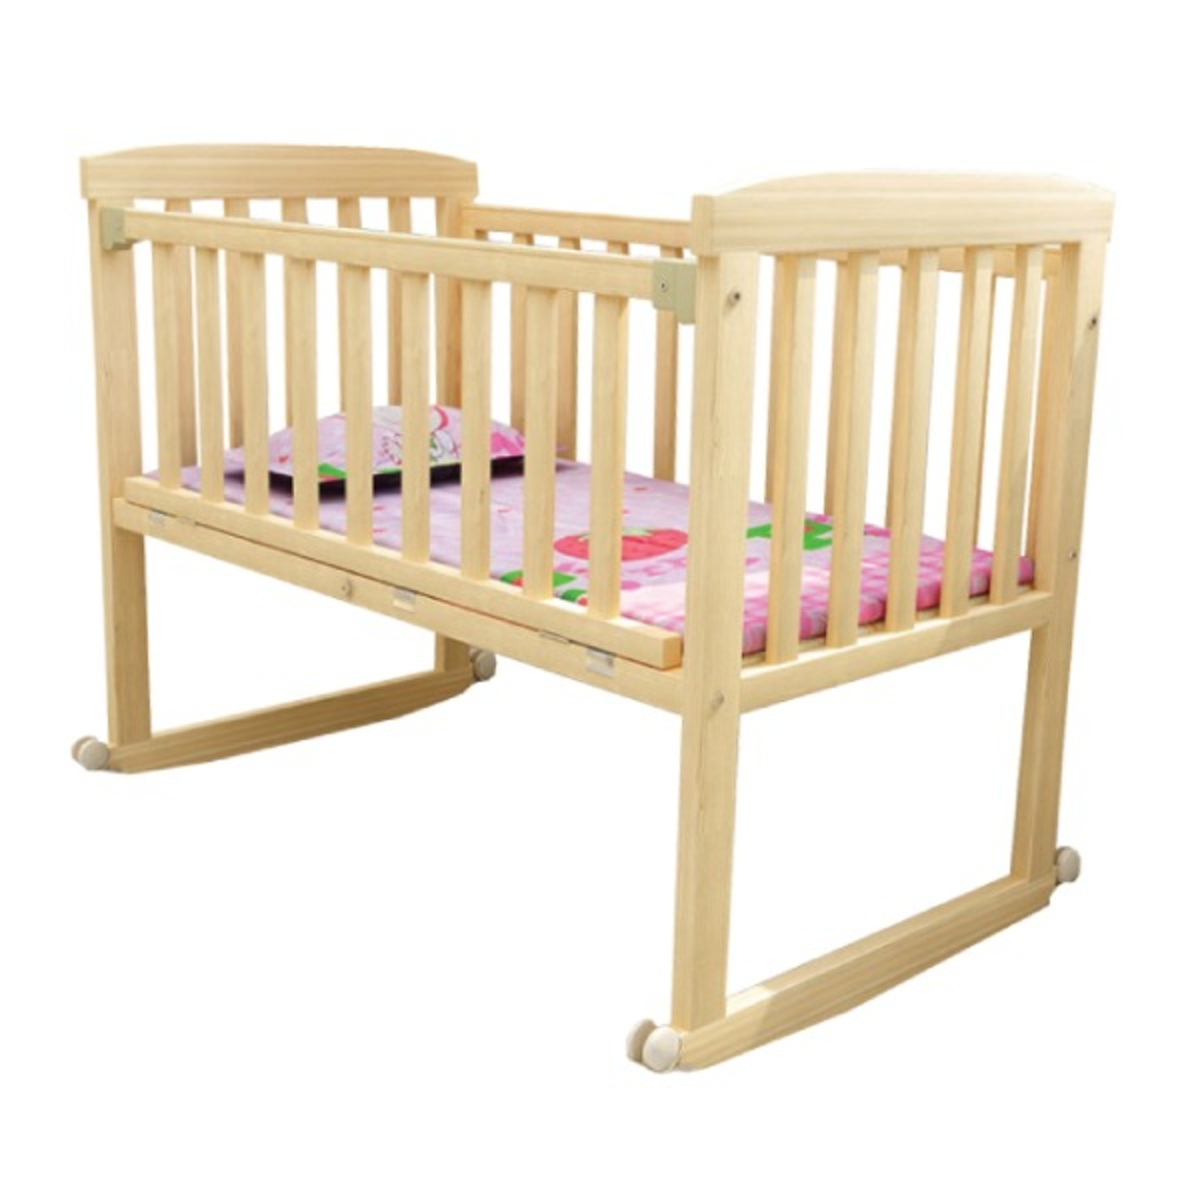 Osuki Cradle Baby Cot Wooden Rocking Foc Mosquito Net N Holder Go Shop